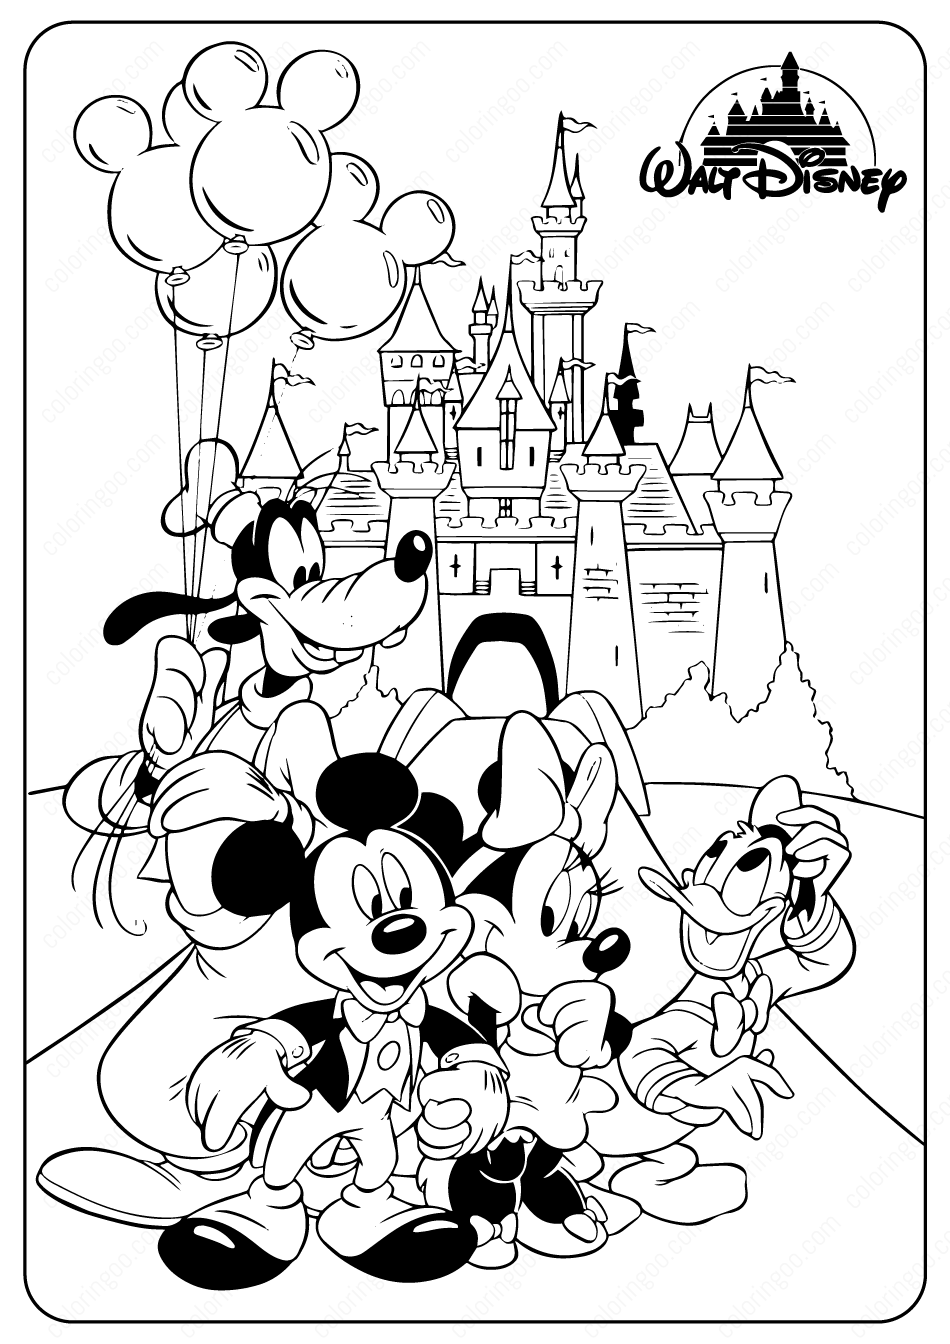 Minnie Mickey Mouse Coloring Pages In 2020 Cartoon Coloring Pages Disney Coloring Pages Disney Coloring Sheets